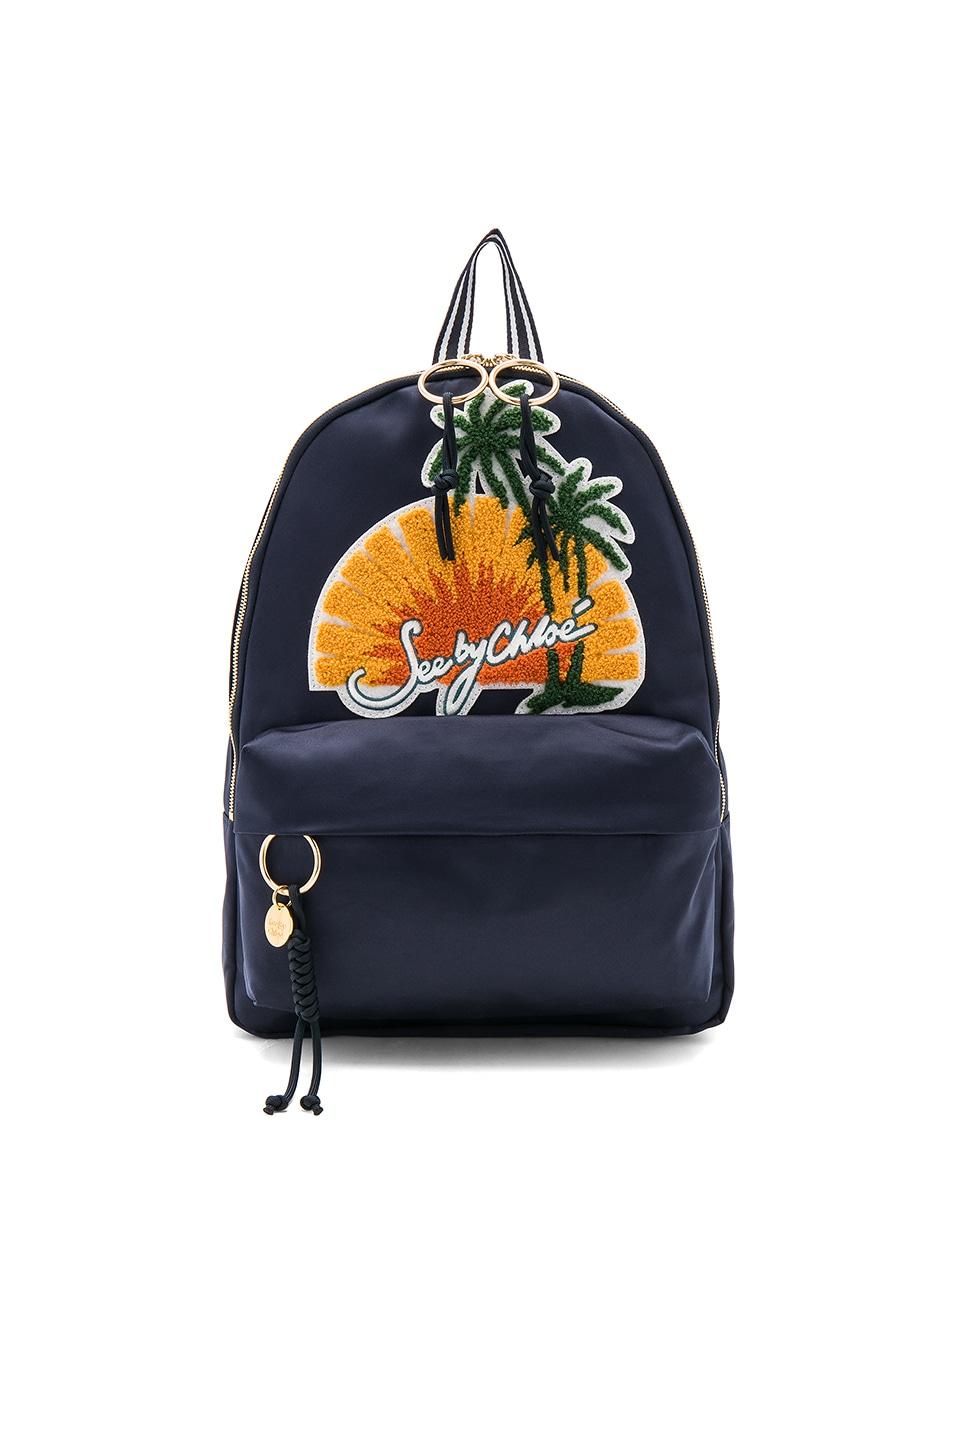 Backpack by See By Chloe